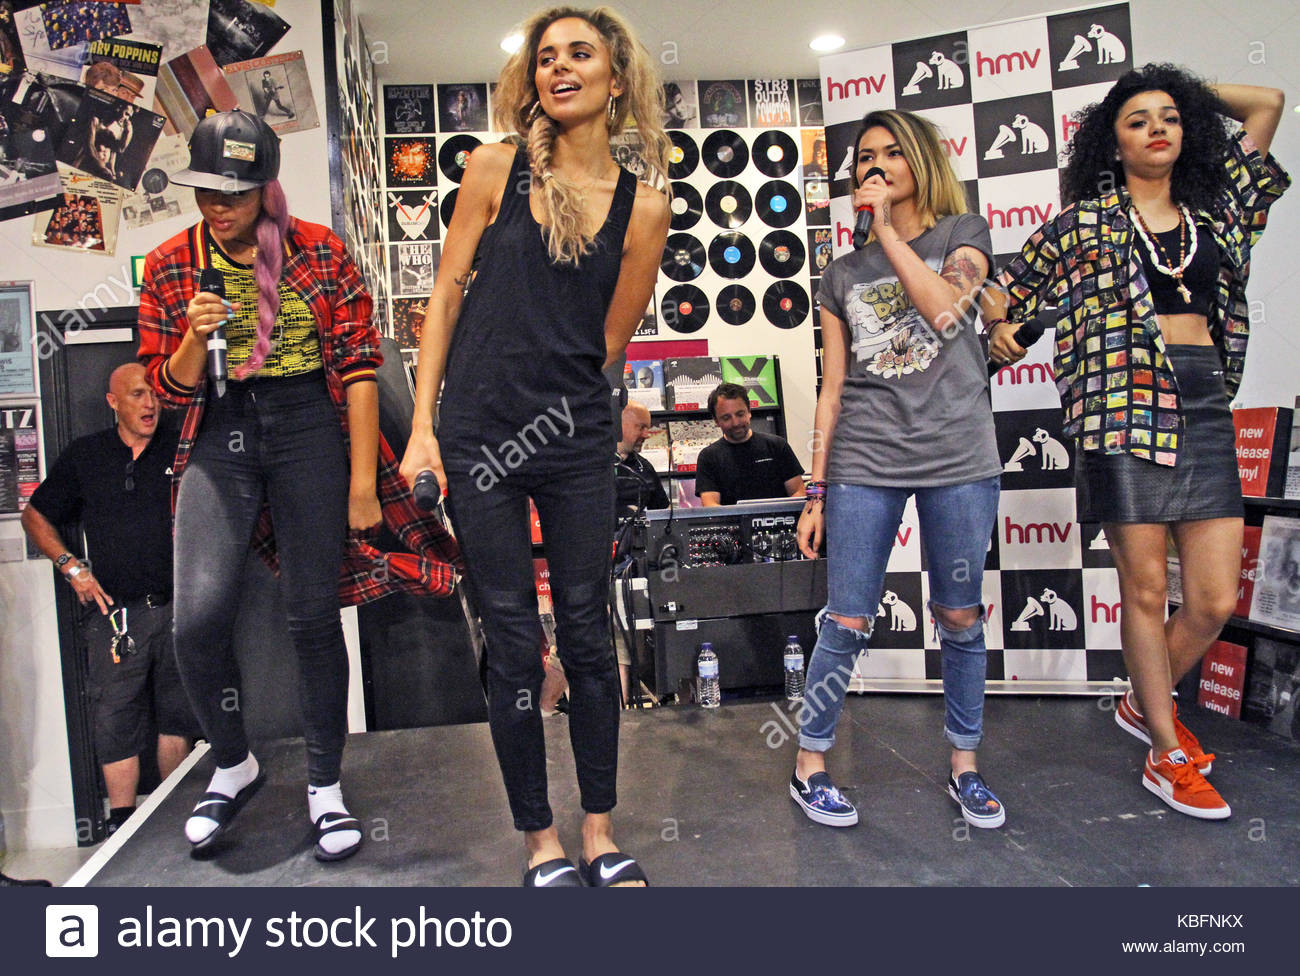 asami zdrenka jessica plummer amira mccarthy and shereen cutkelvin neon jungle neon jungle perform an acoustic set and sign their debut album welcome